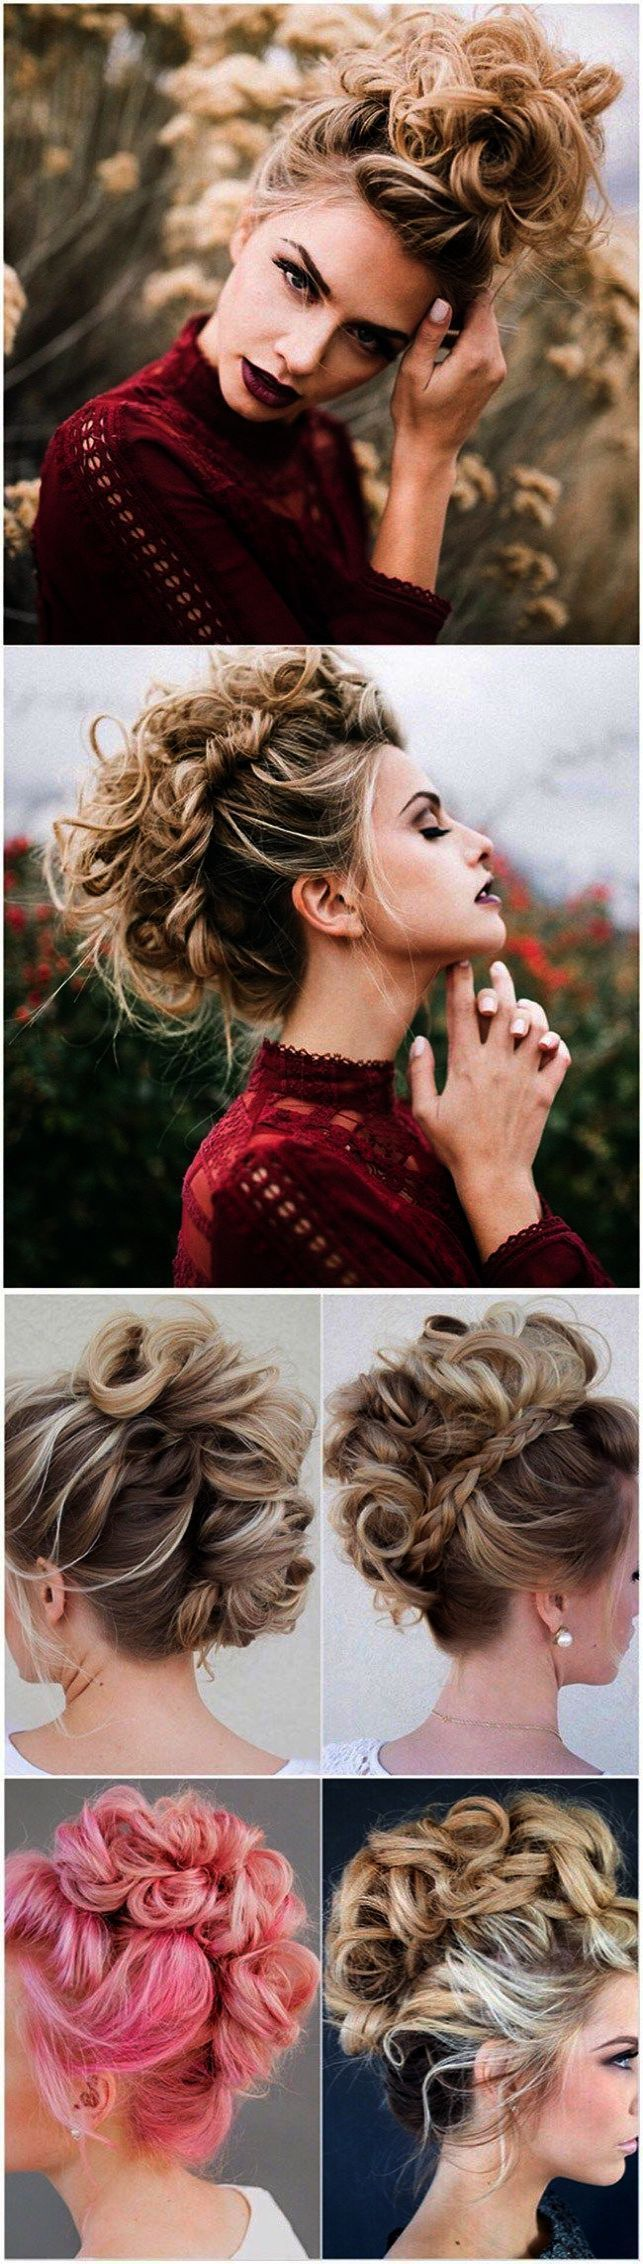 Simple Indian Wedding Hairstyles For Short Hair Wedding Guest Dresses Macys its in 2020 | Short ...